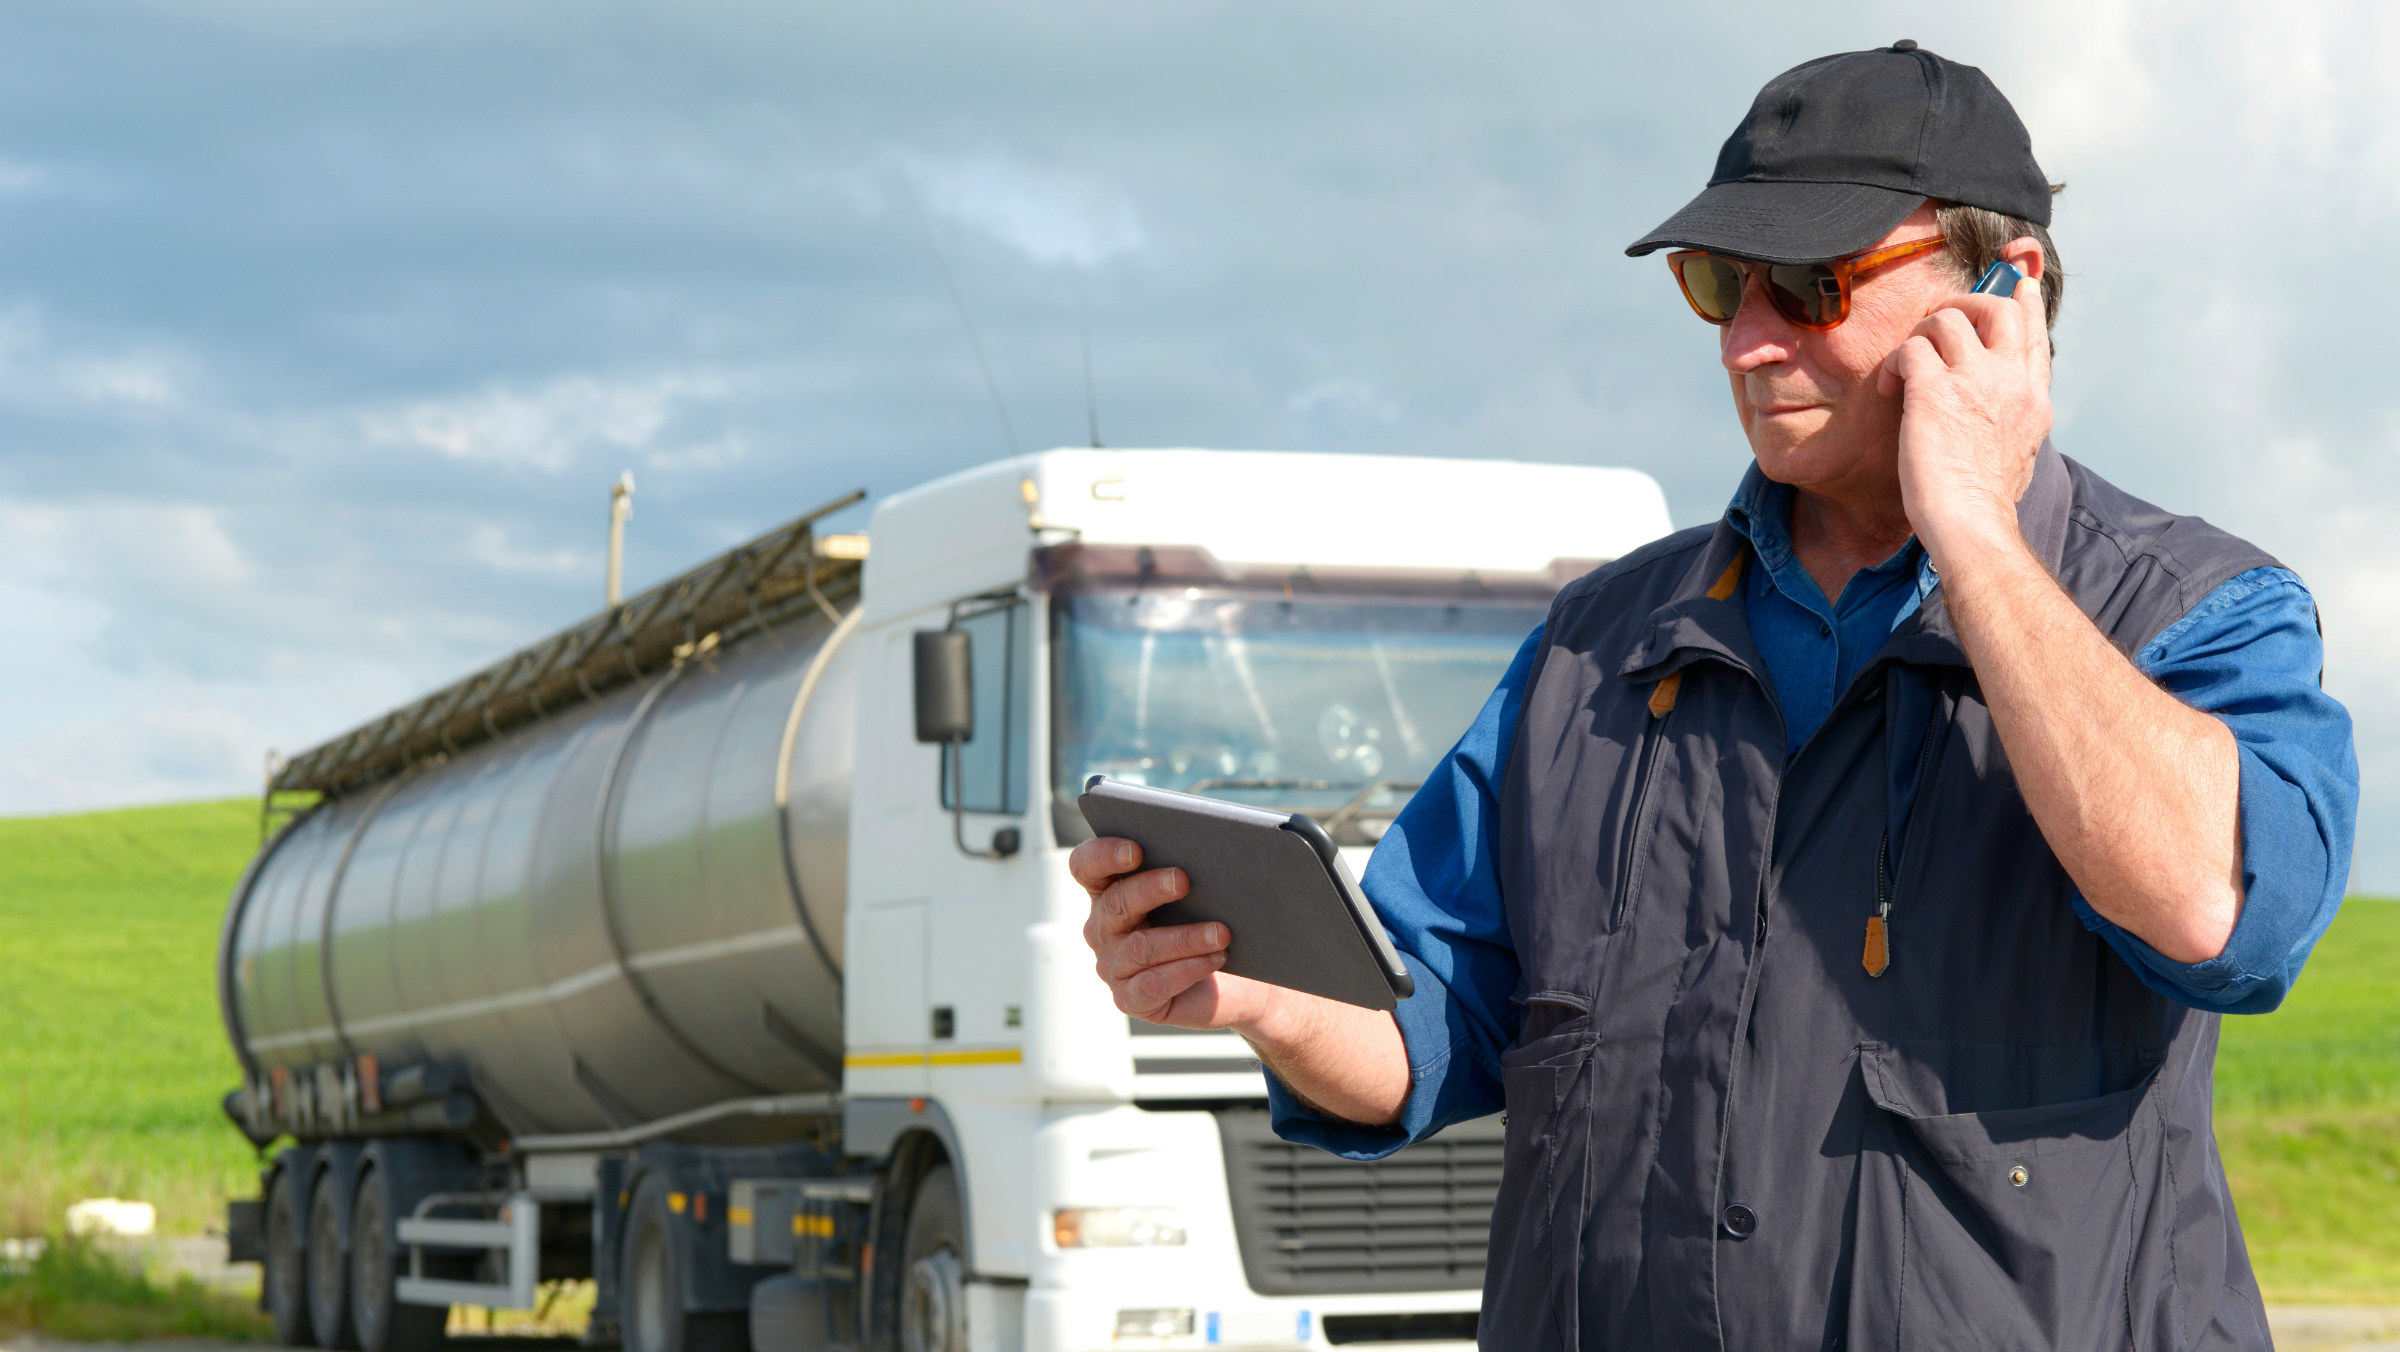 Tanker Measurement and Data Technology for Dairy Fleet